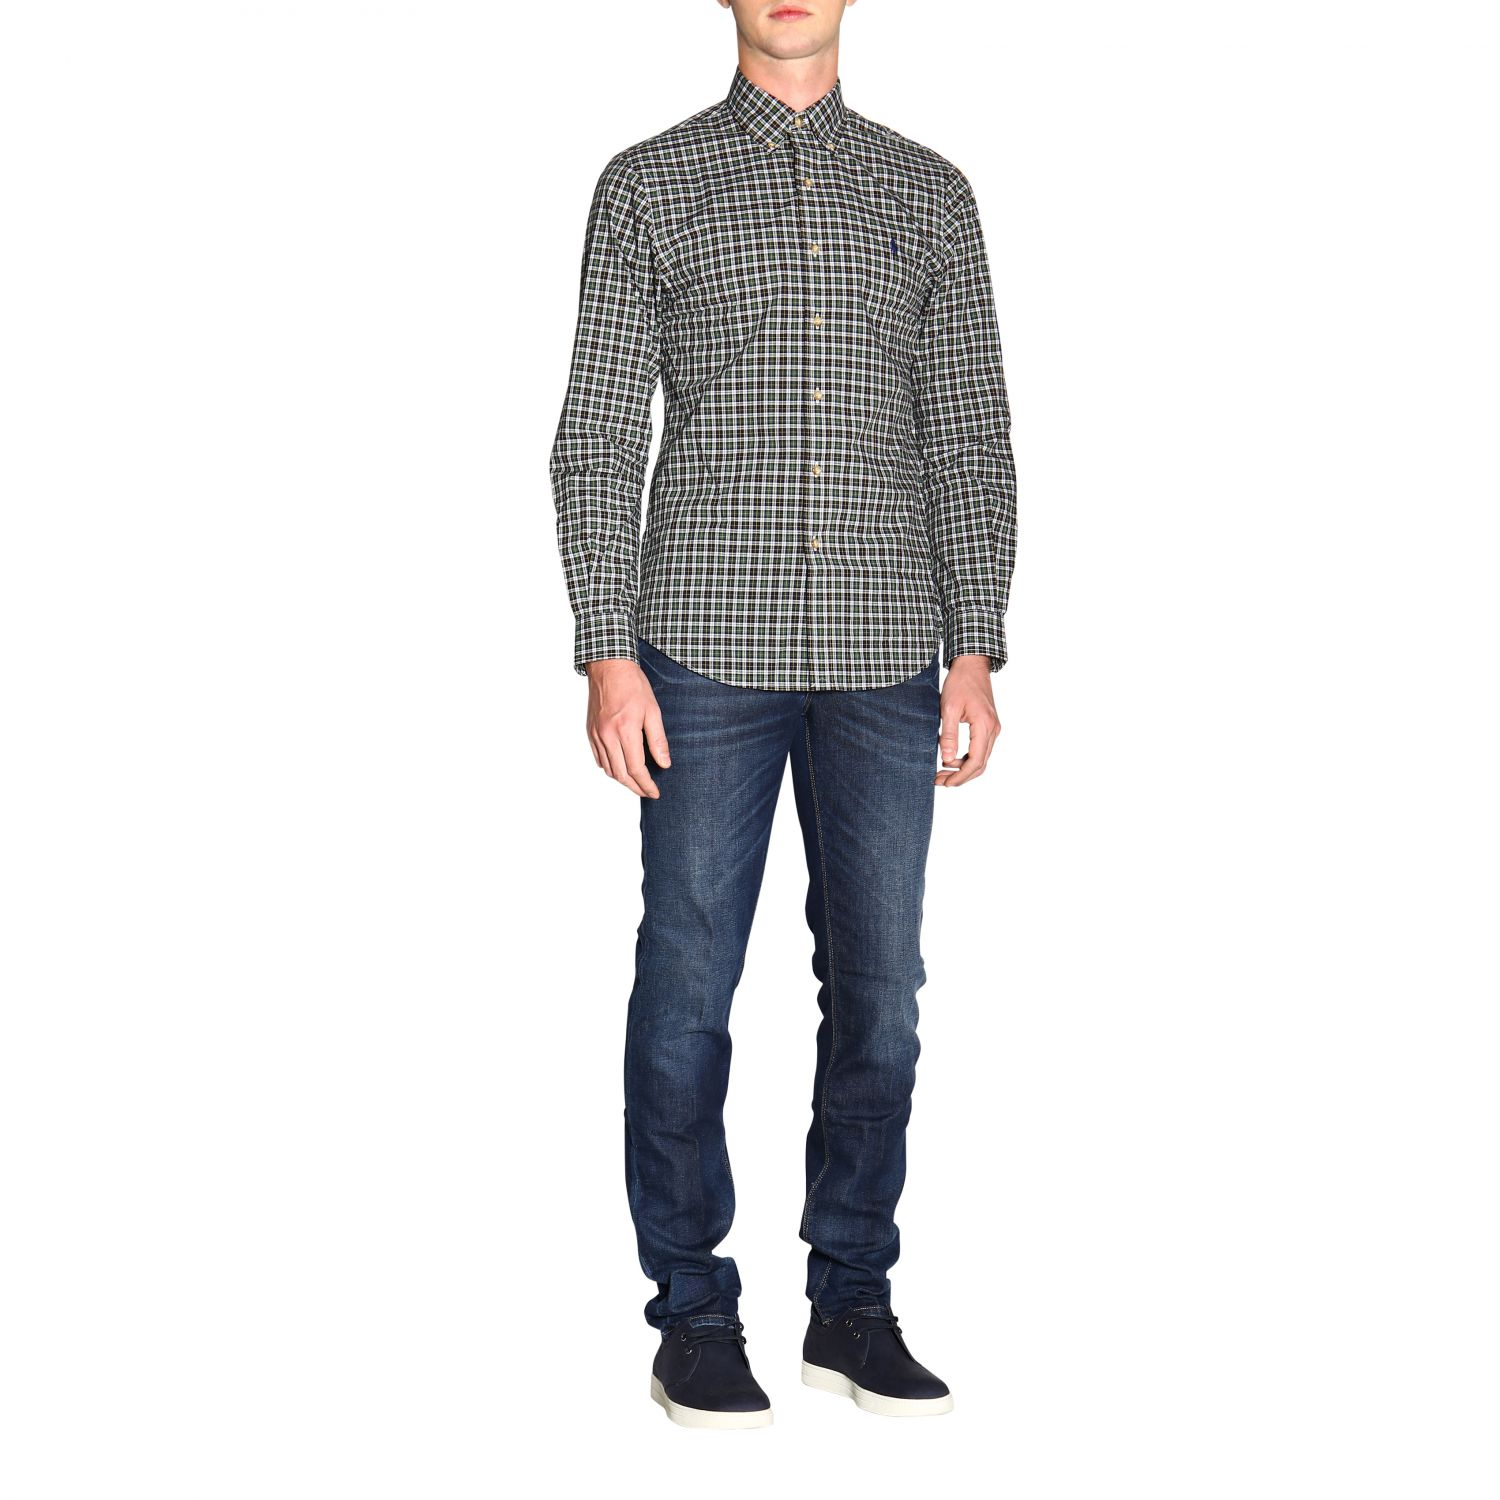 Jeans hombre Re-hash azul oscuro 2